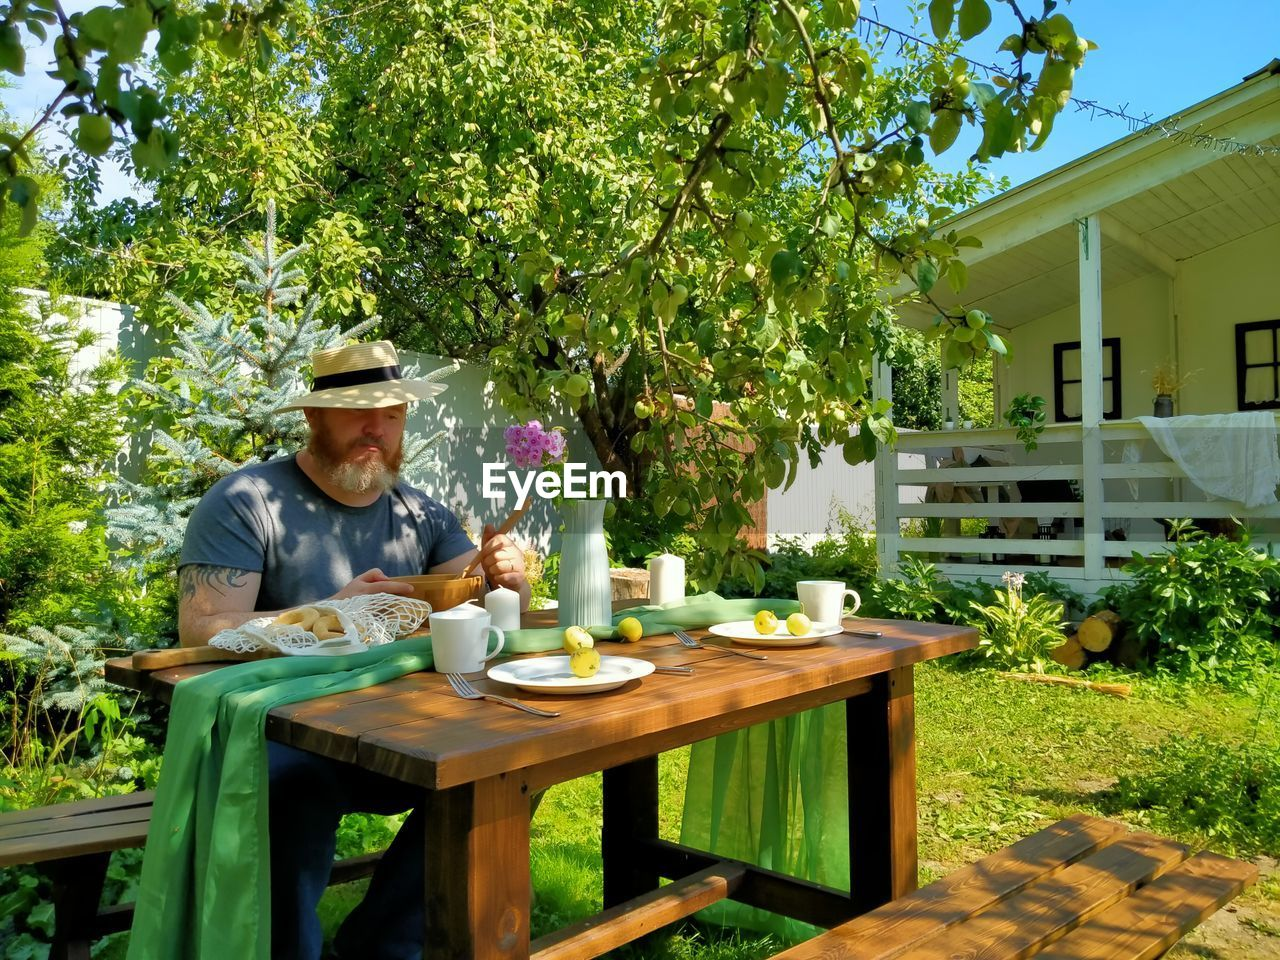 VIEW OF MAN SITTING ON TABLE AGAINST PLANTS